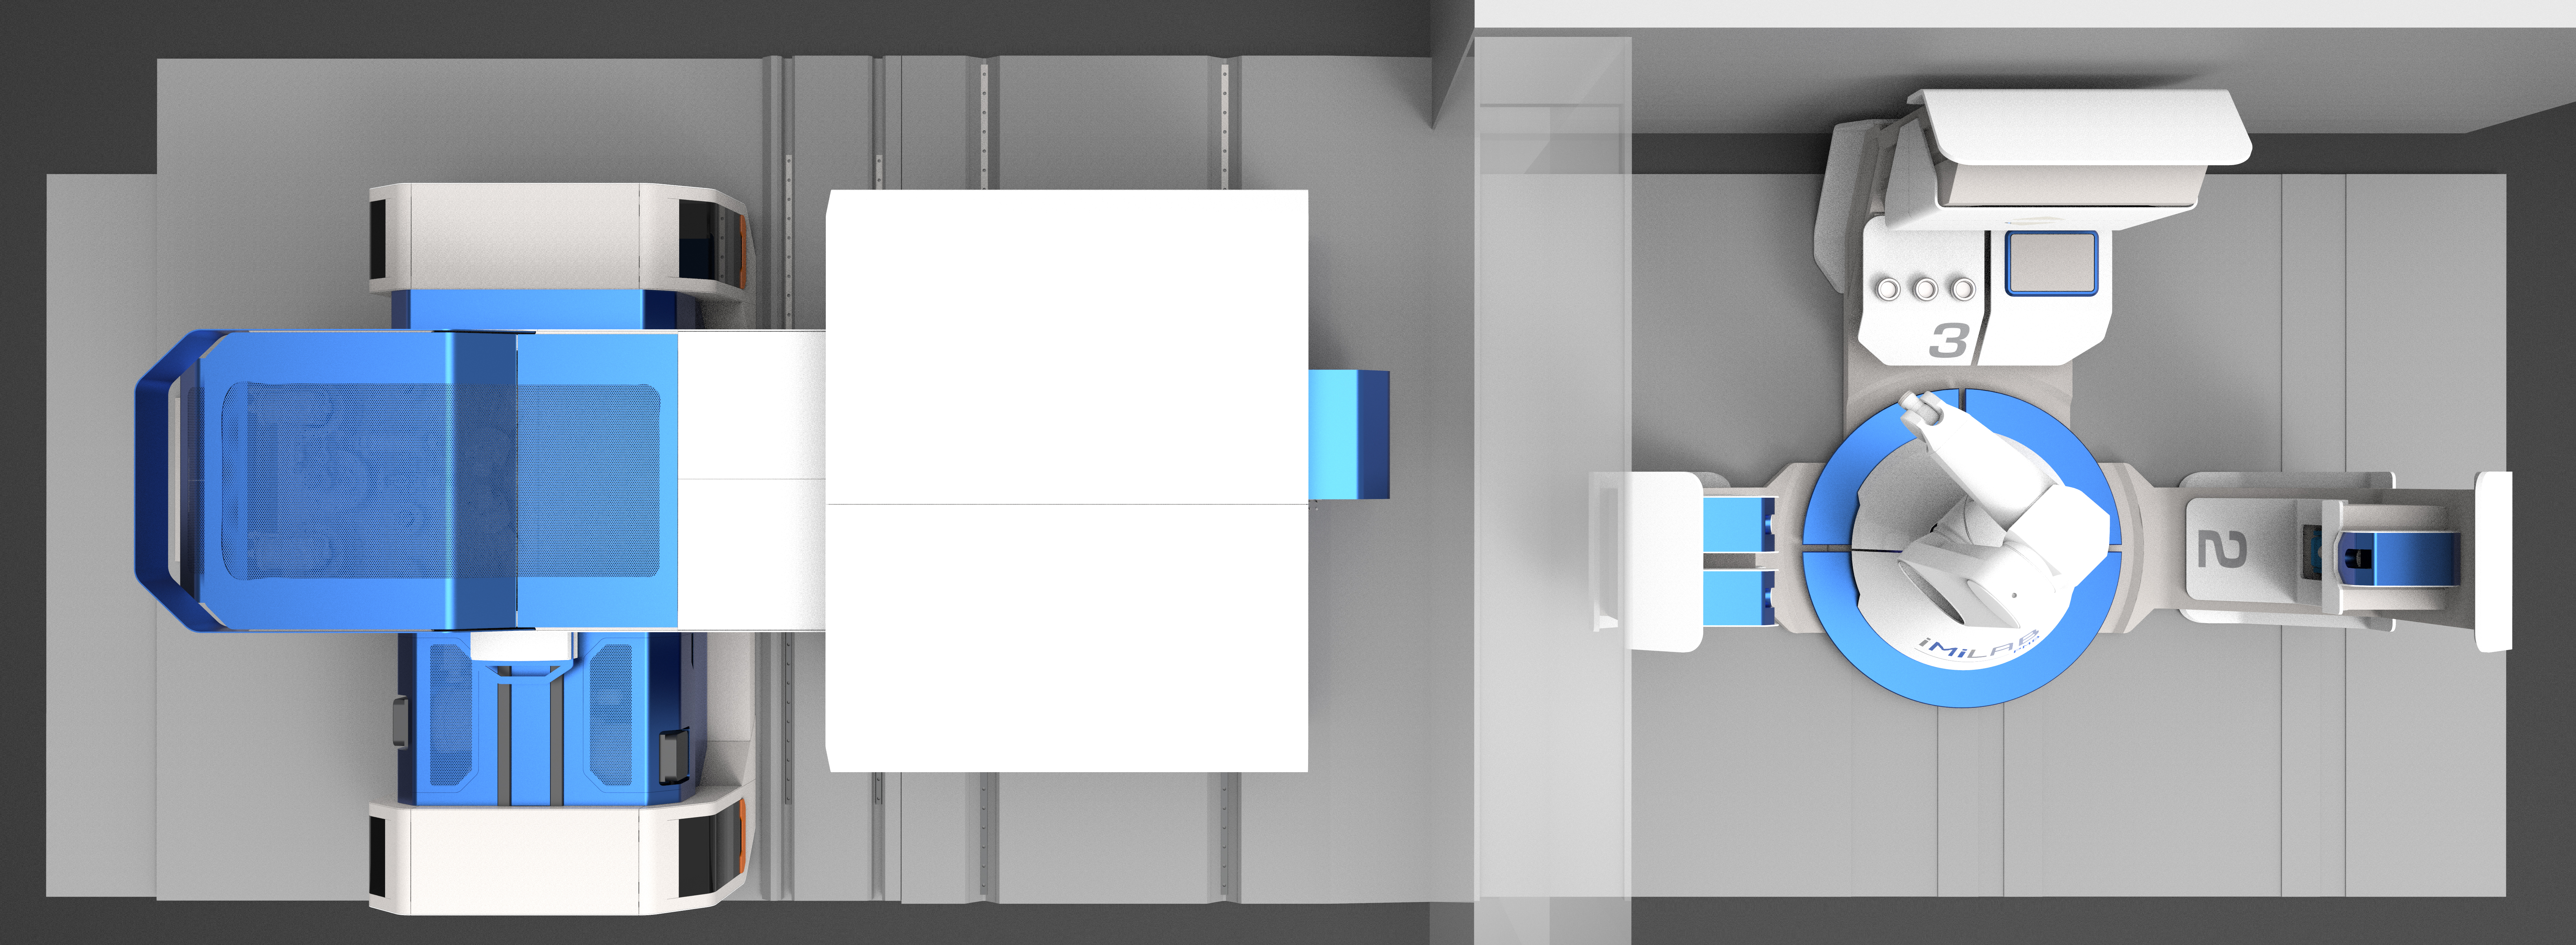 iMiGiNE automated radiopharmaceutical production system for pet imaging by pmb-alcen